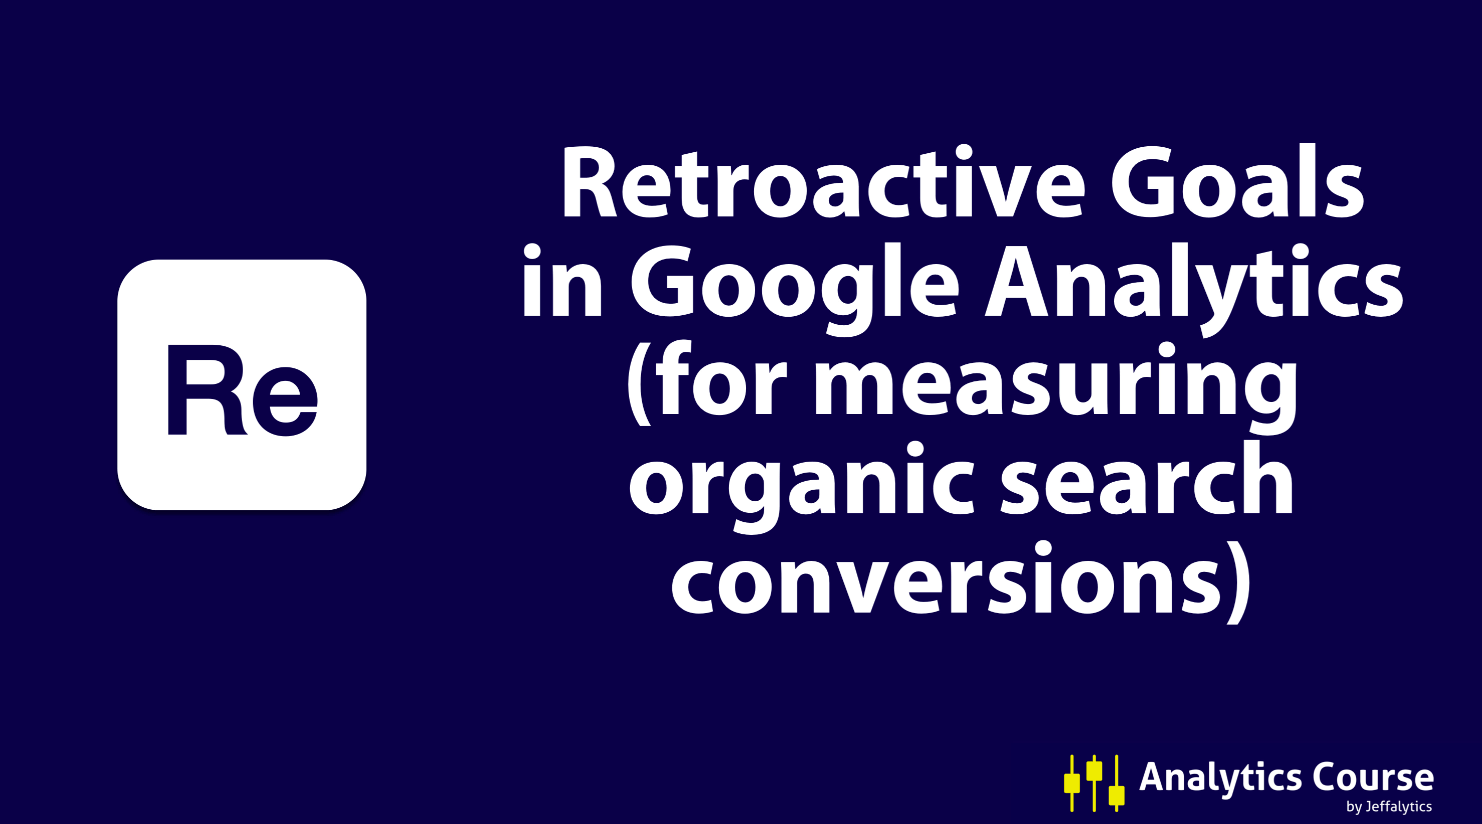 Retroactive goal and conversion tracking in Google Analytics